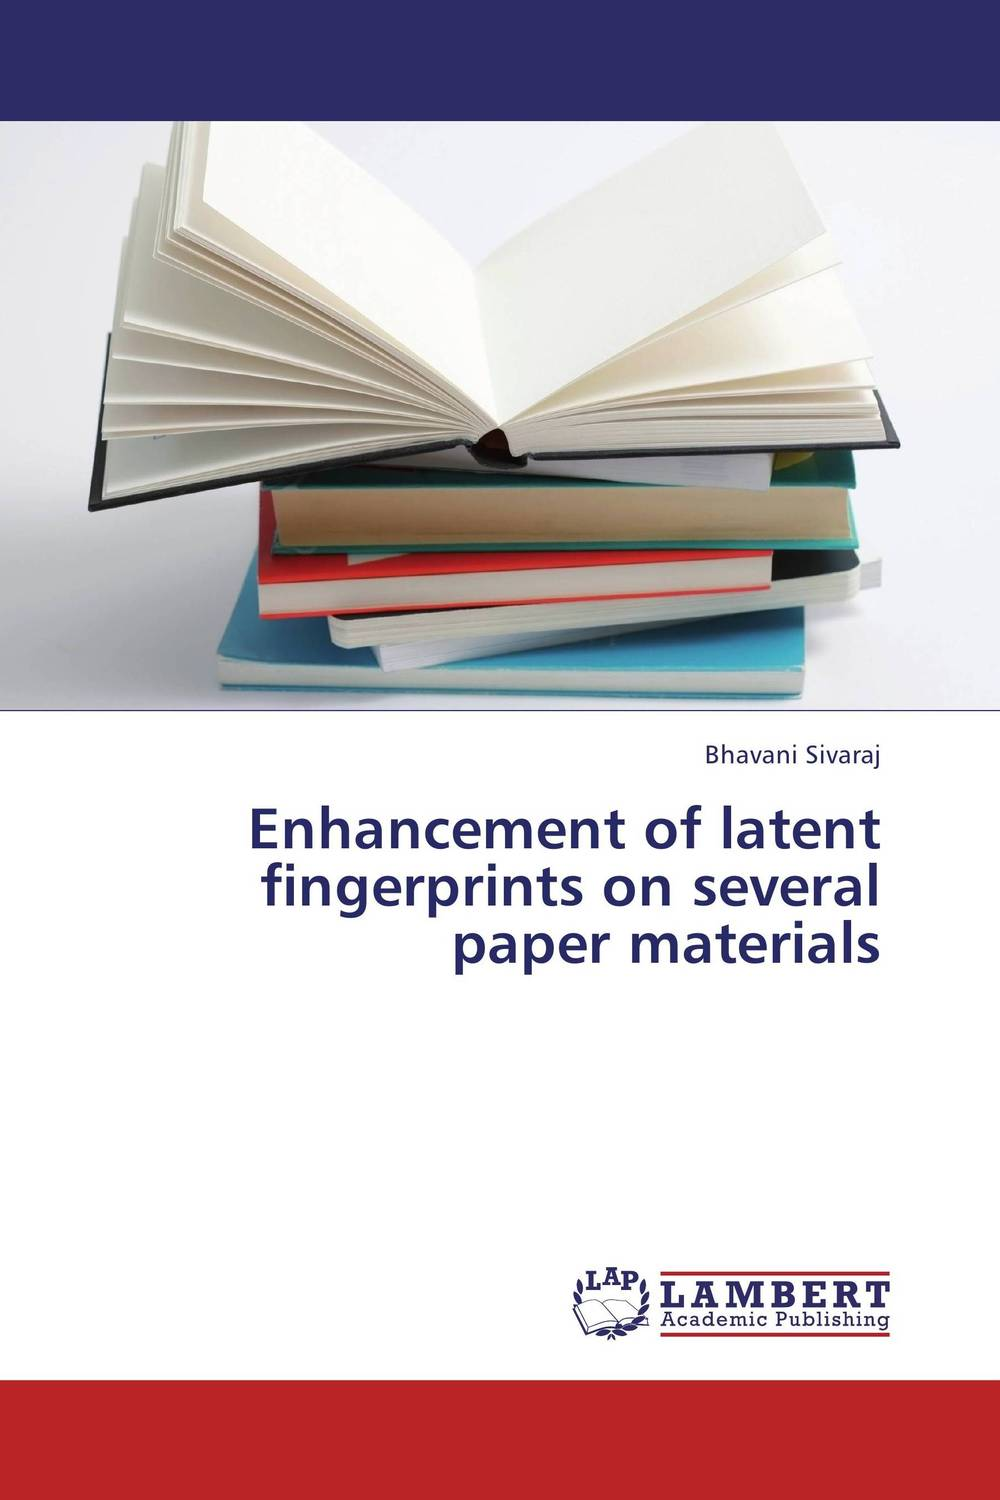 Enhancement of latent fingerprints on several paper materials